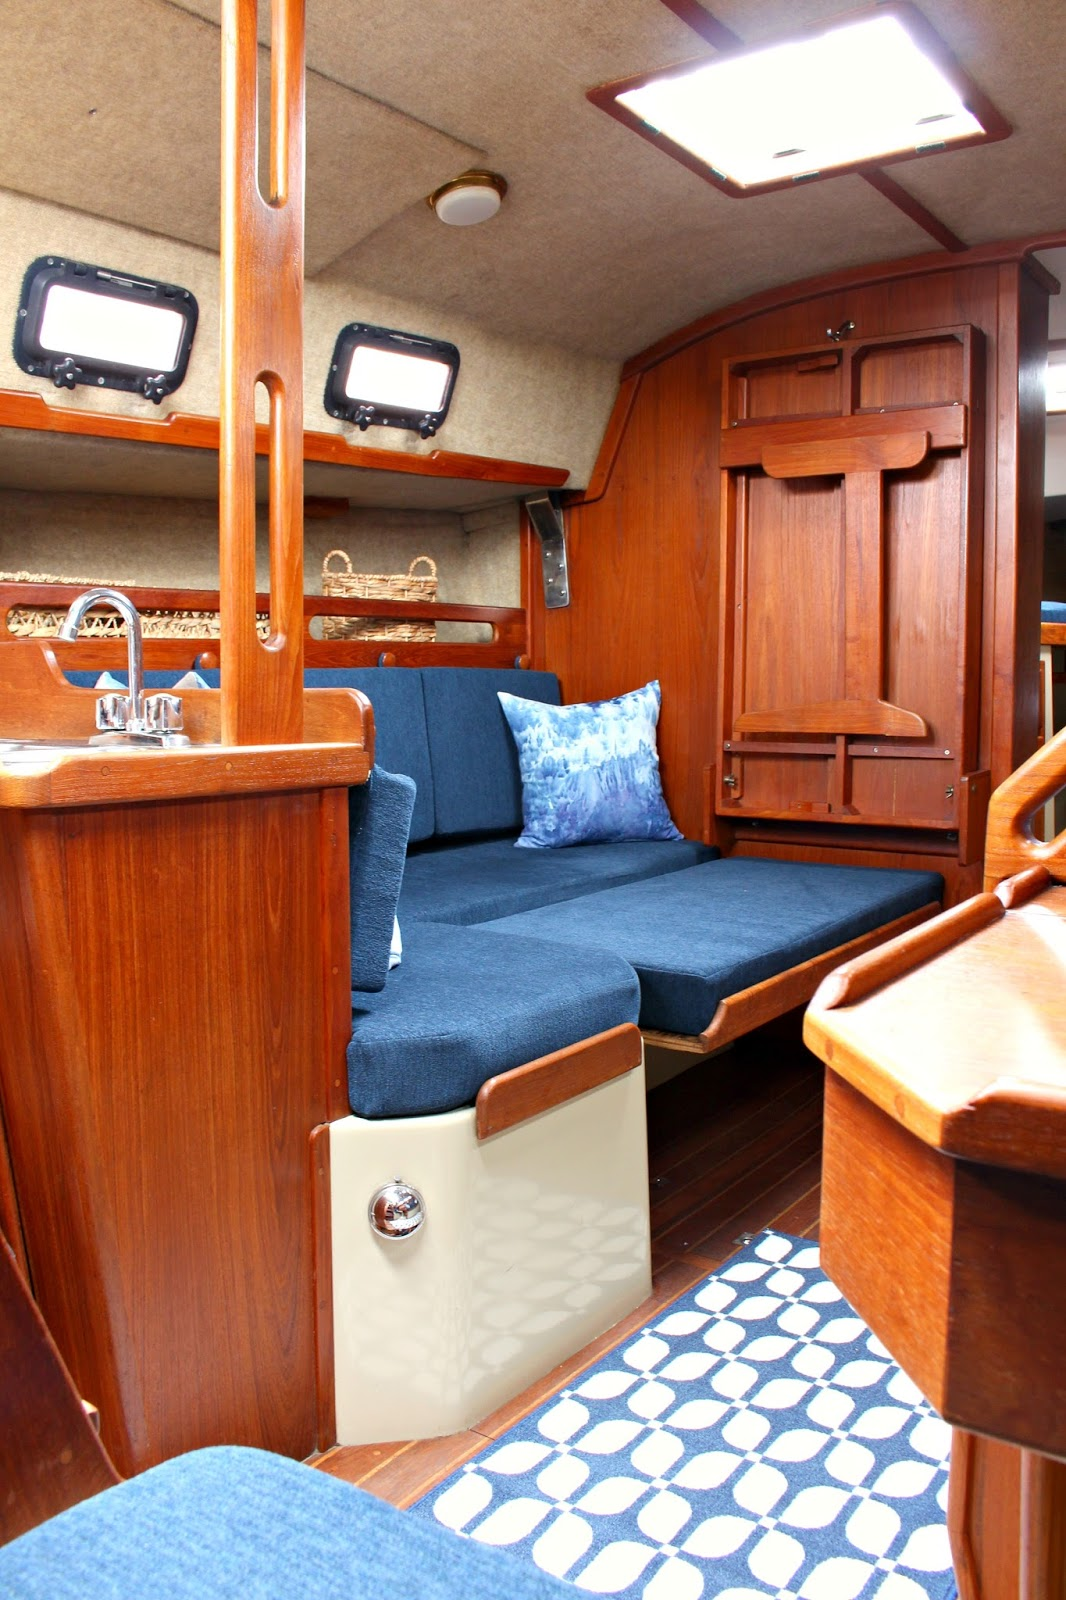 Ahoy tour our updated ticon 30 sailboat interior dans for Boat interior design ideas home